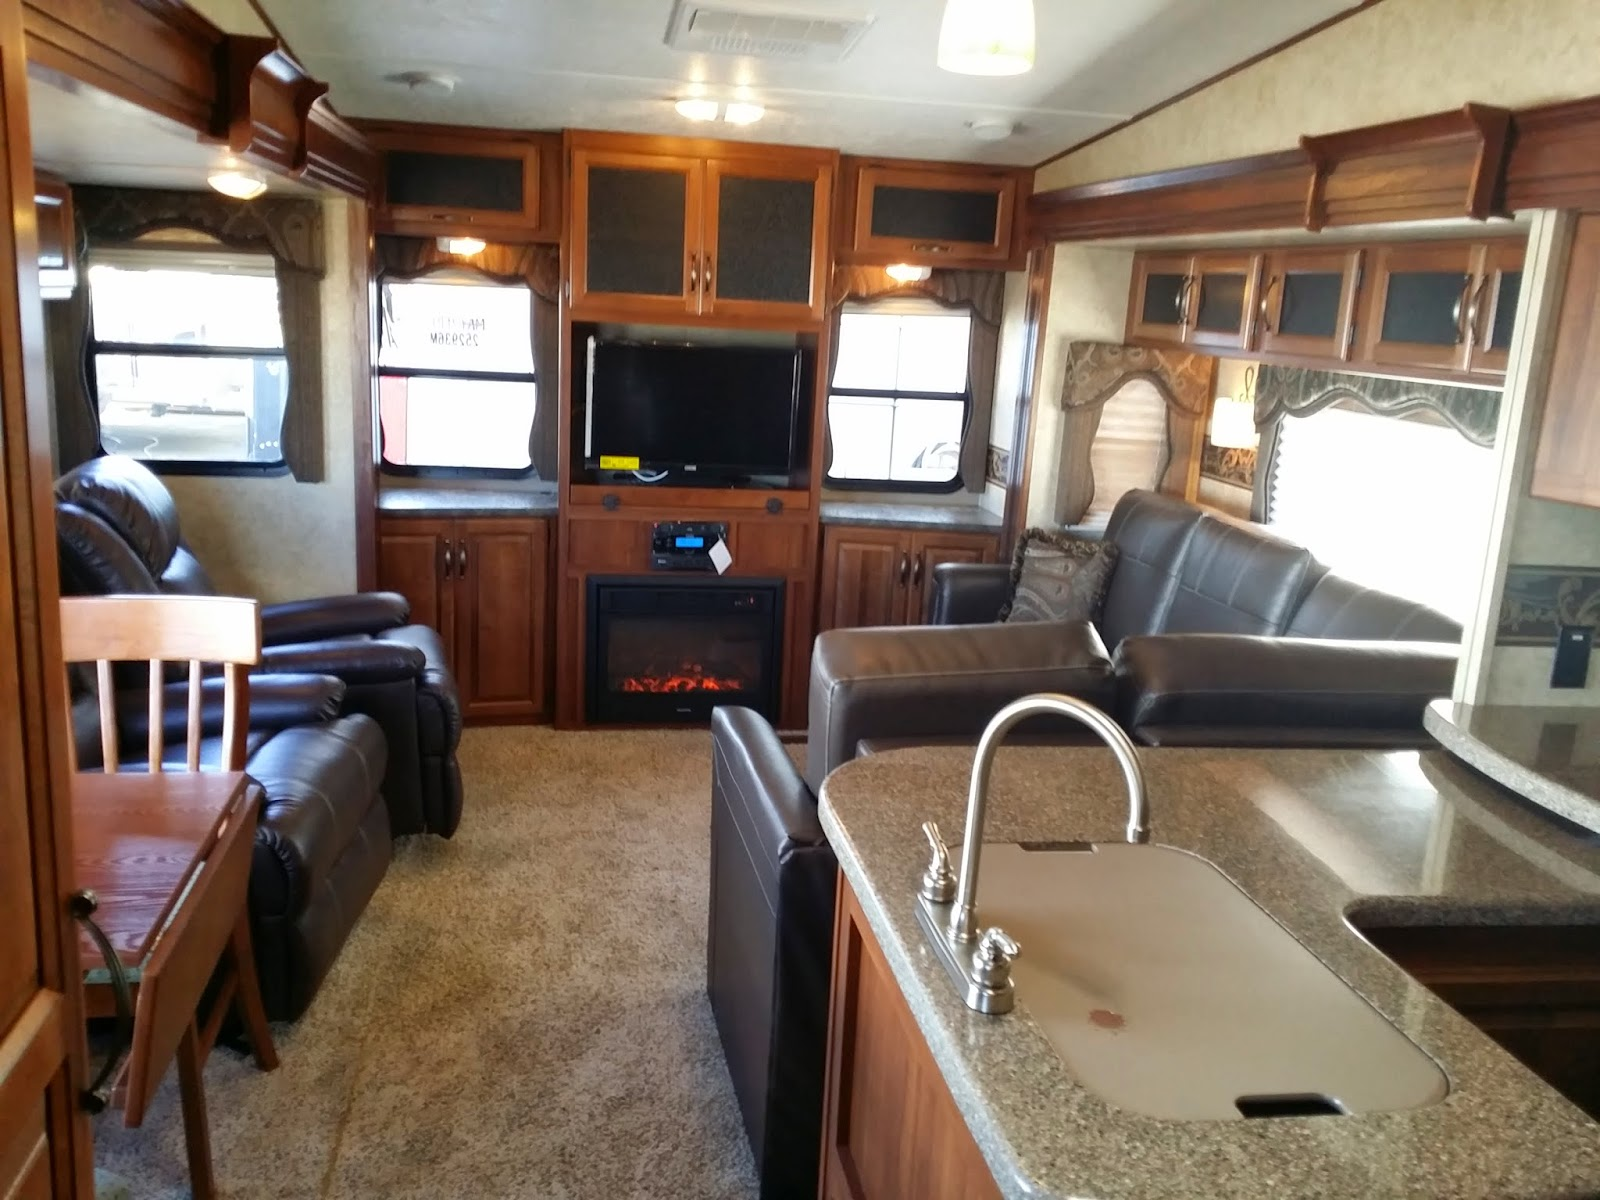 2 bedroom travel trailer. 2 Bedroom Fifth Wheel  High Quality 2 Bedroom 5th Wheel 9 Fifth